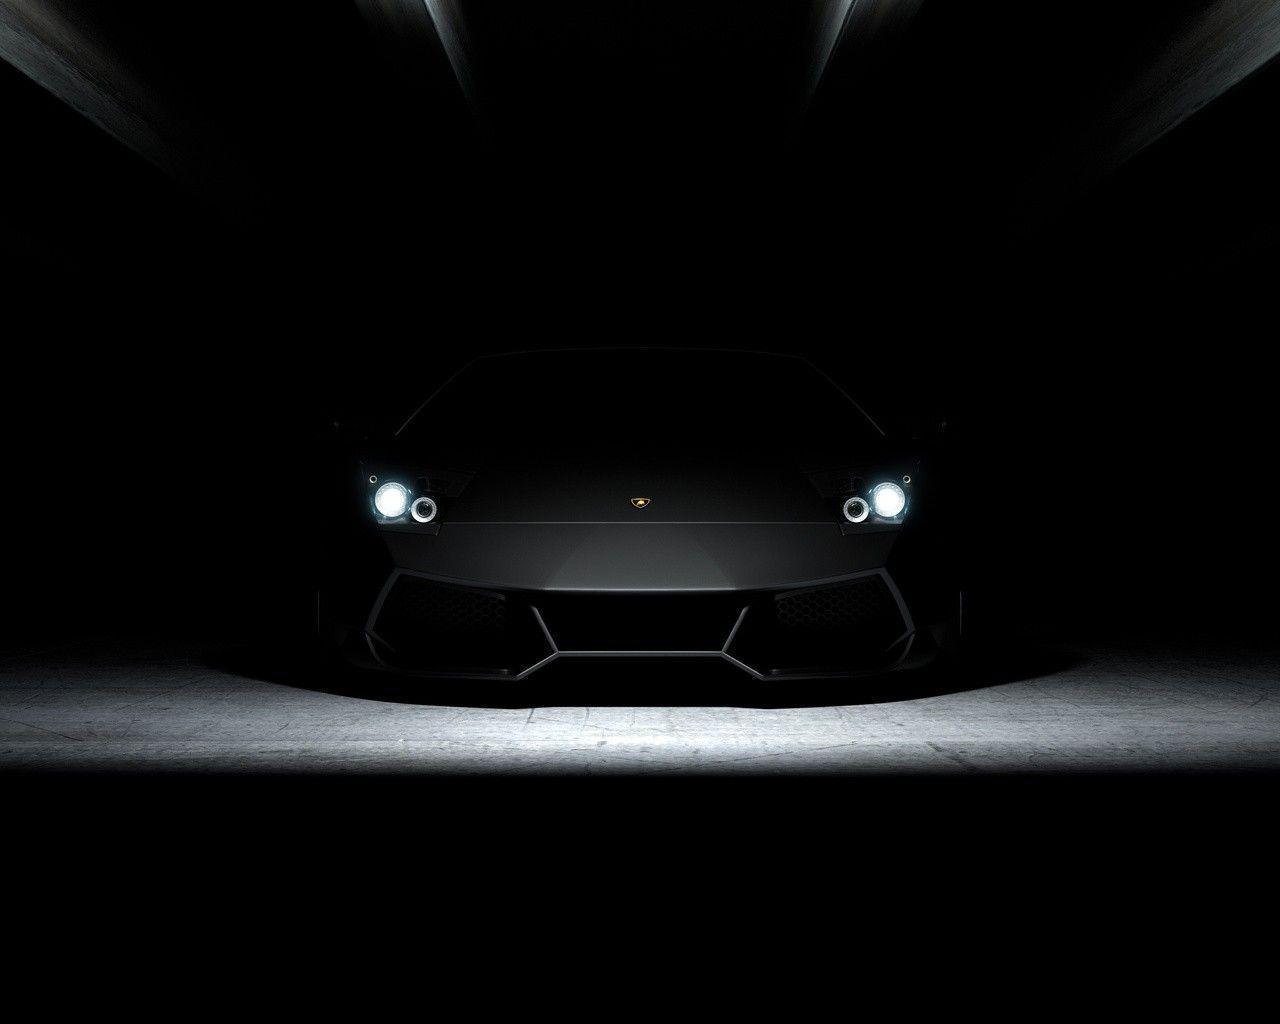 Black Car Wallpapers Top Free Black Car Backgrounds Wallpaperaccess